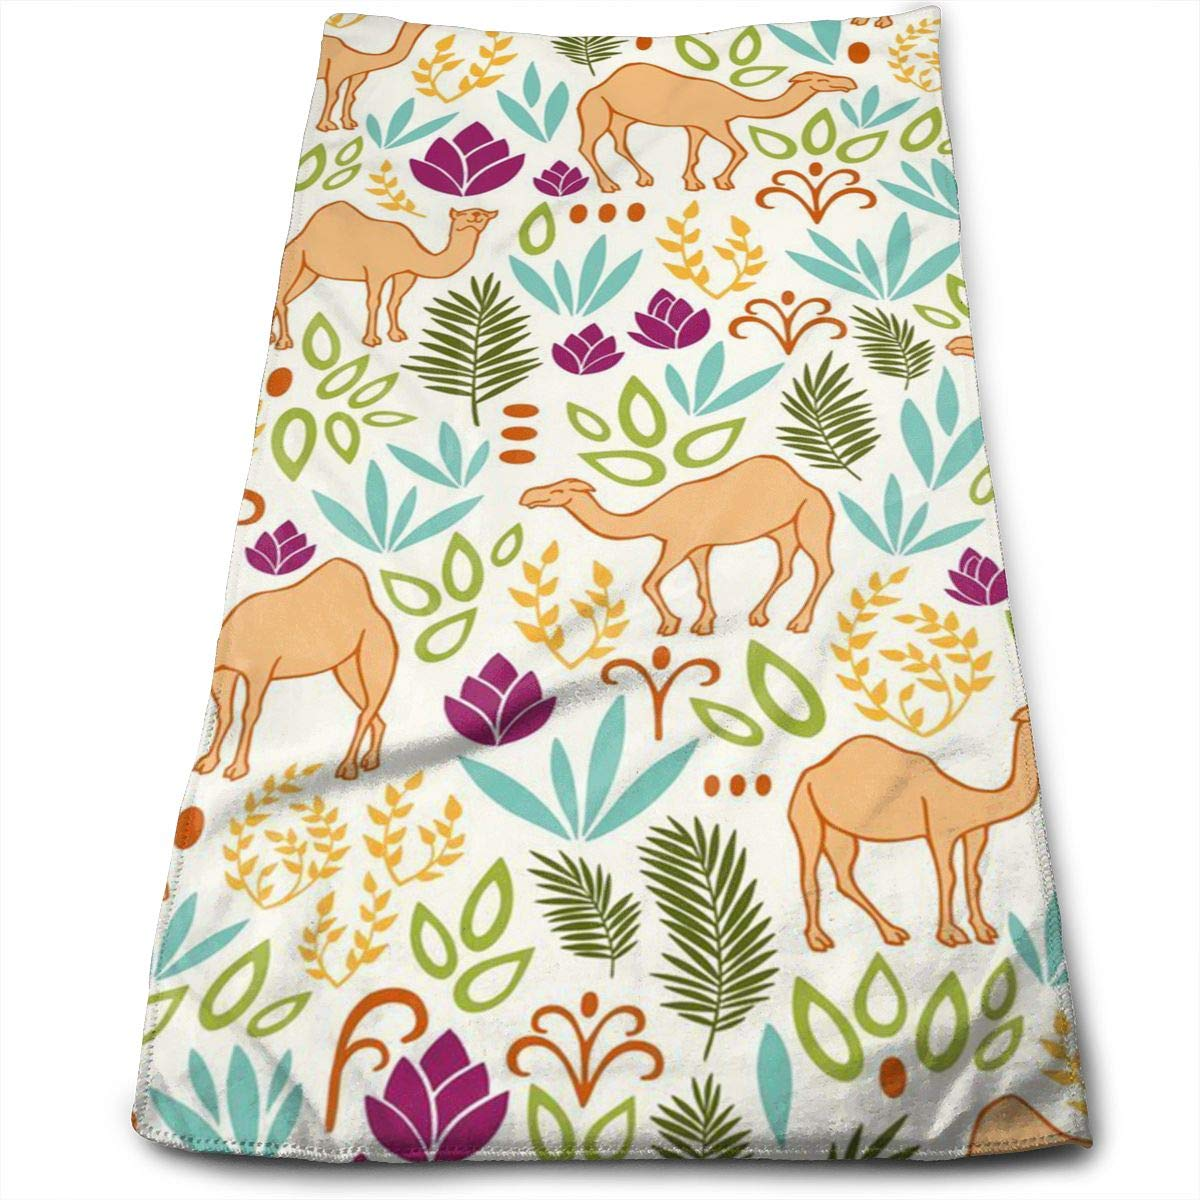 QiFfan22 Flower Camels Kitchen Towels - Dish Cloth - Machine Washable Cotton Kitchen Dishcloths,Dish Towel & Tea Towels for Drying,Cleaning,Cooking,Baking (12 X 27.5 Inch)